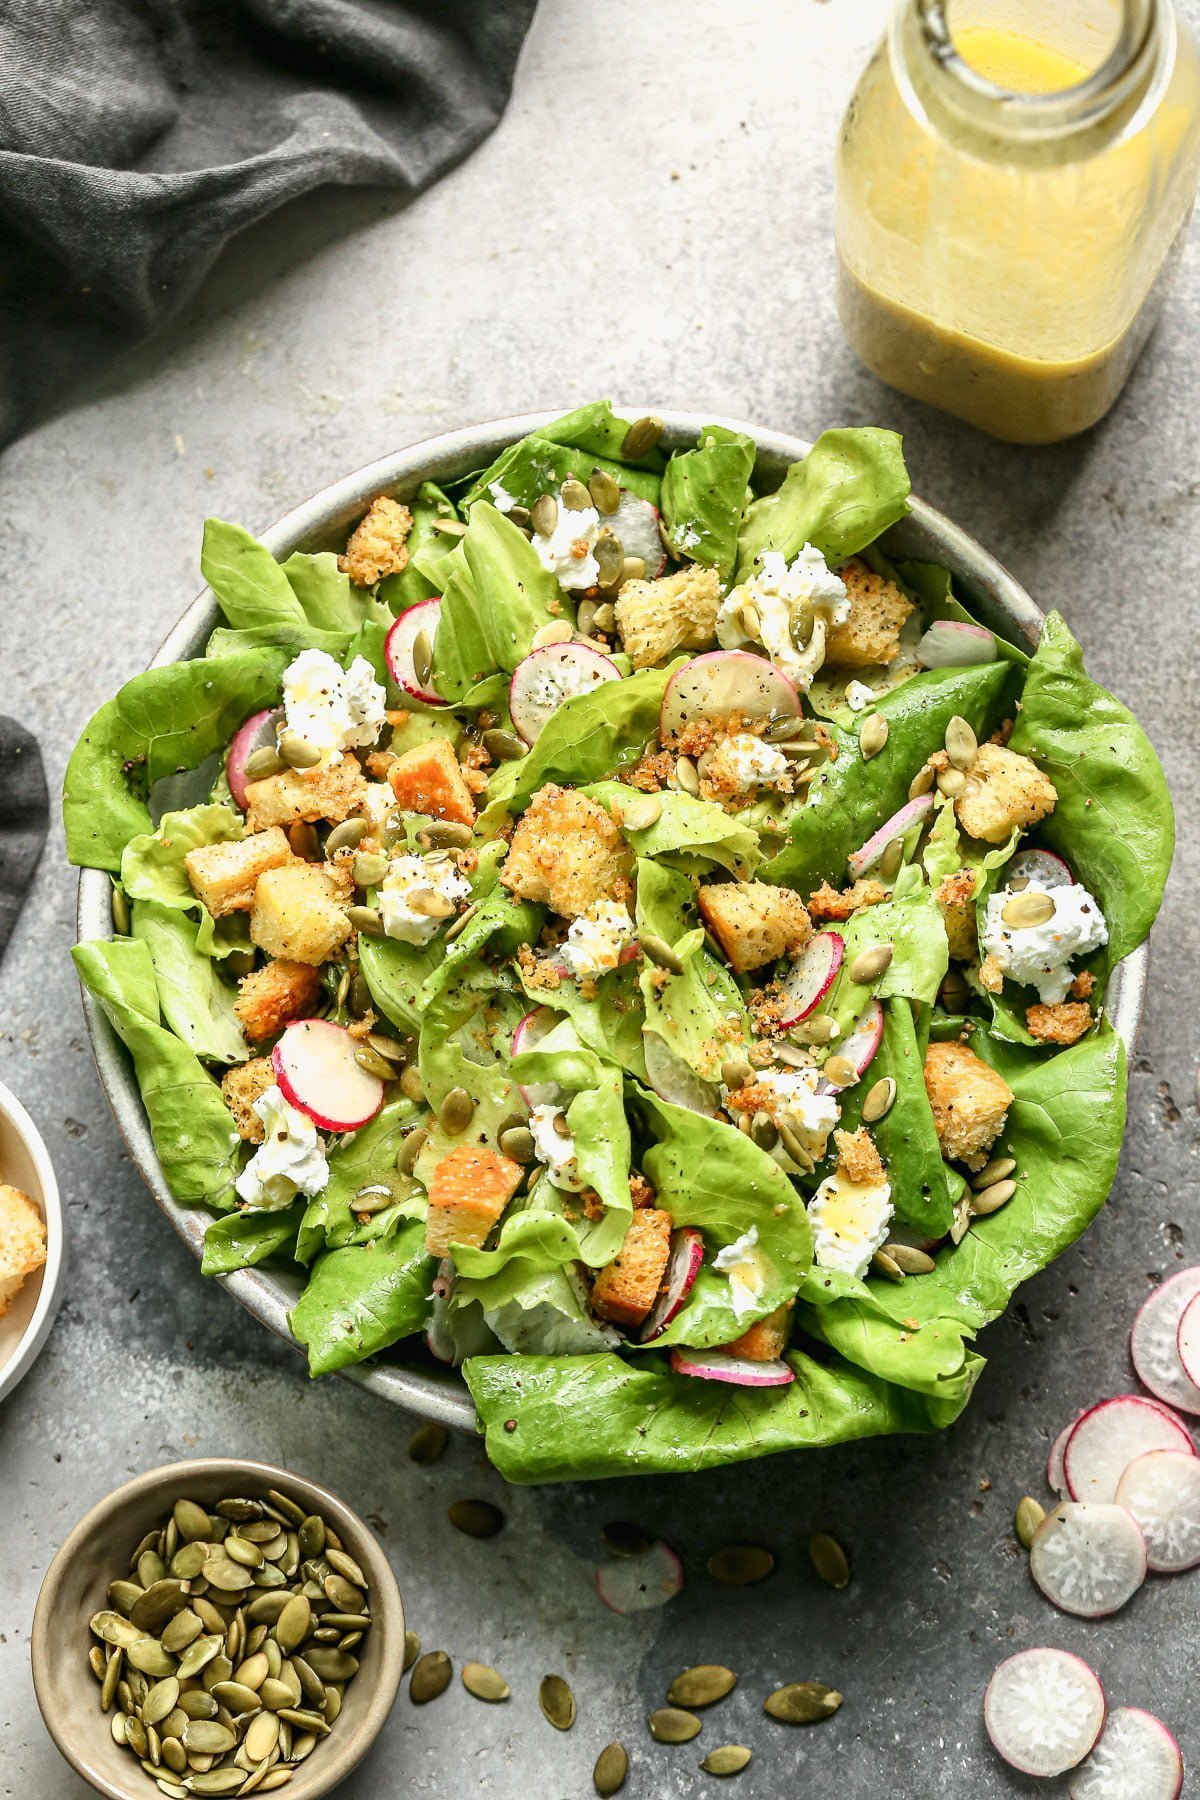 Summer is upon us and so are light, refreshing, seasonal salads. Brimming with homemade croutons, creamy goat cheese, crunchy pepita seeds, and crisp radish, our Butter Lettuce Salad is an easy side dish we come back to time and time again. Prep the dressing and croutons at the beginning of the week and enjoy a little bit every day.